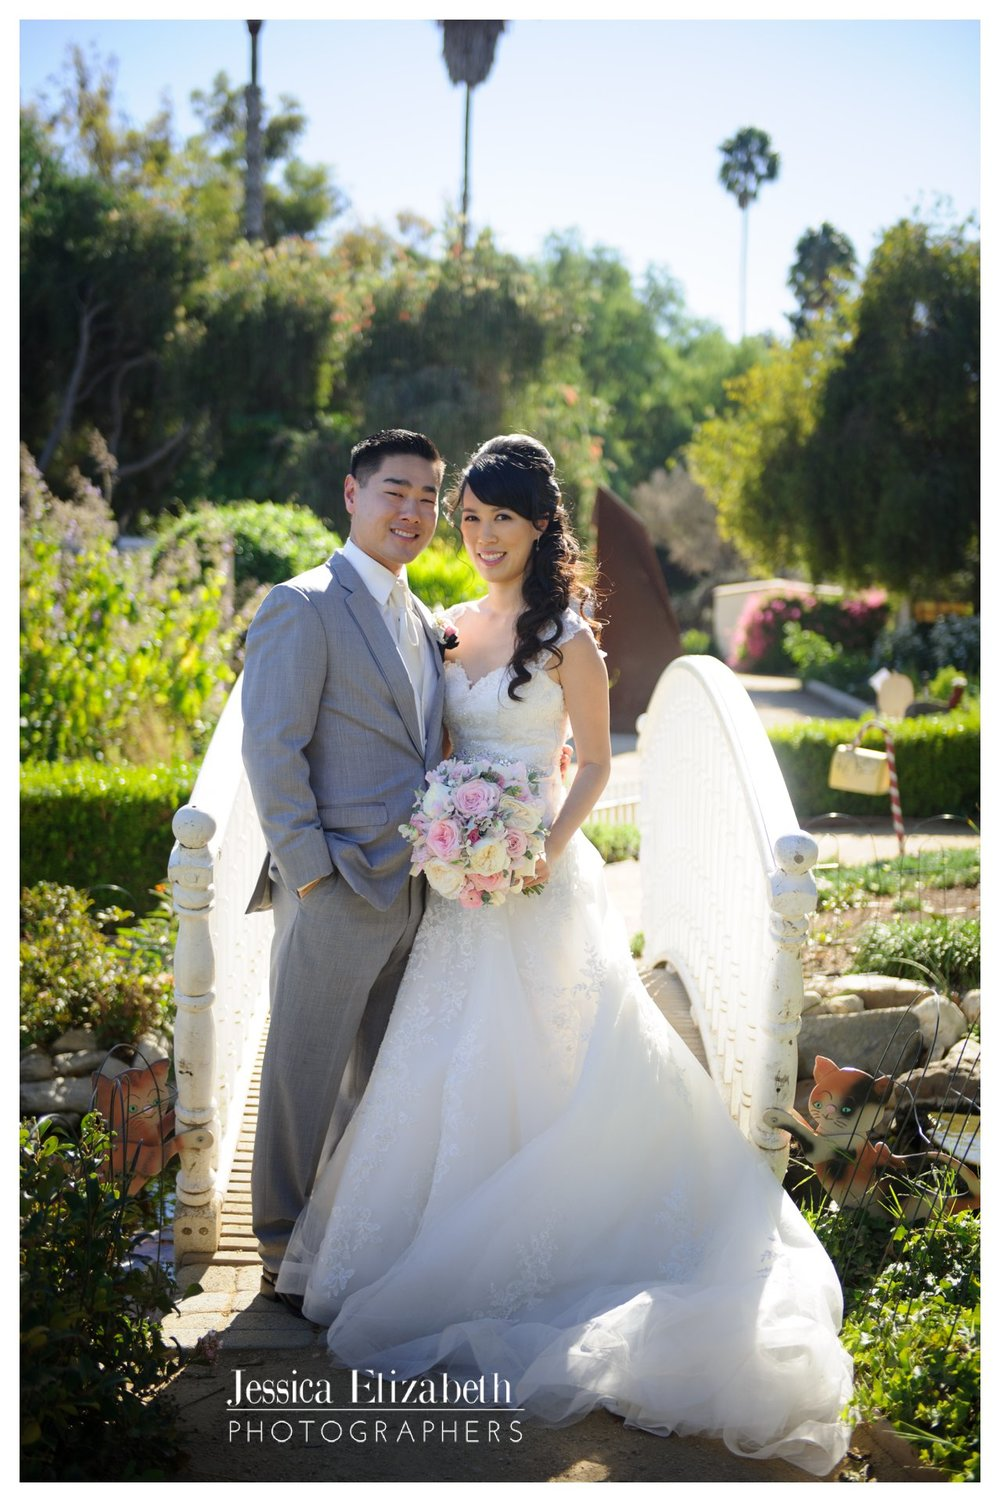 15-South-Coast-Botanic-Garden-Palos-Verdes-Wedding-Photography-by-Jessica-Elizabeth.jpg